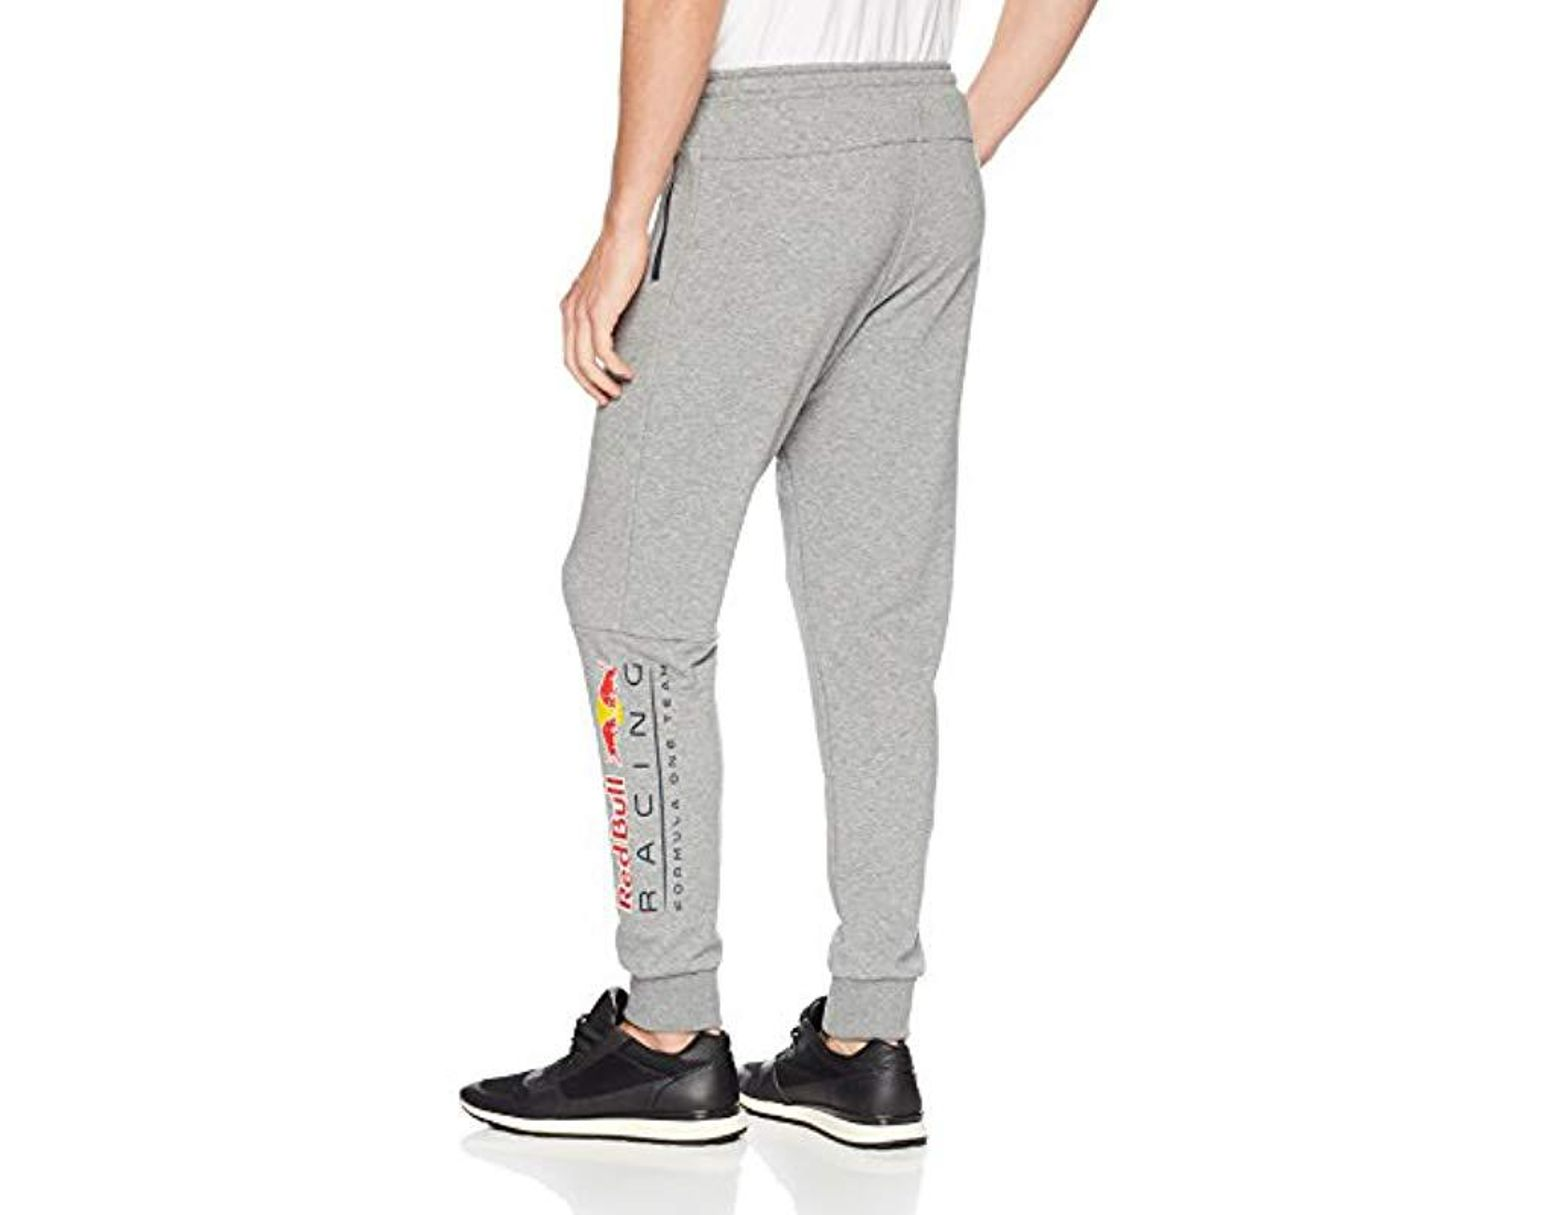 e95fe33647149 Lyst - PUMA Red Bull Racing Logo Sweat Pants in Gray for Men - Save 9%